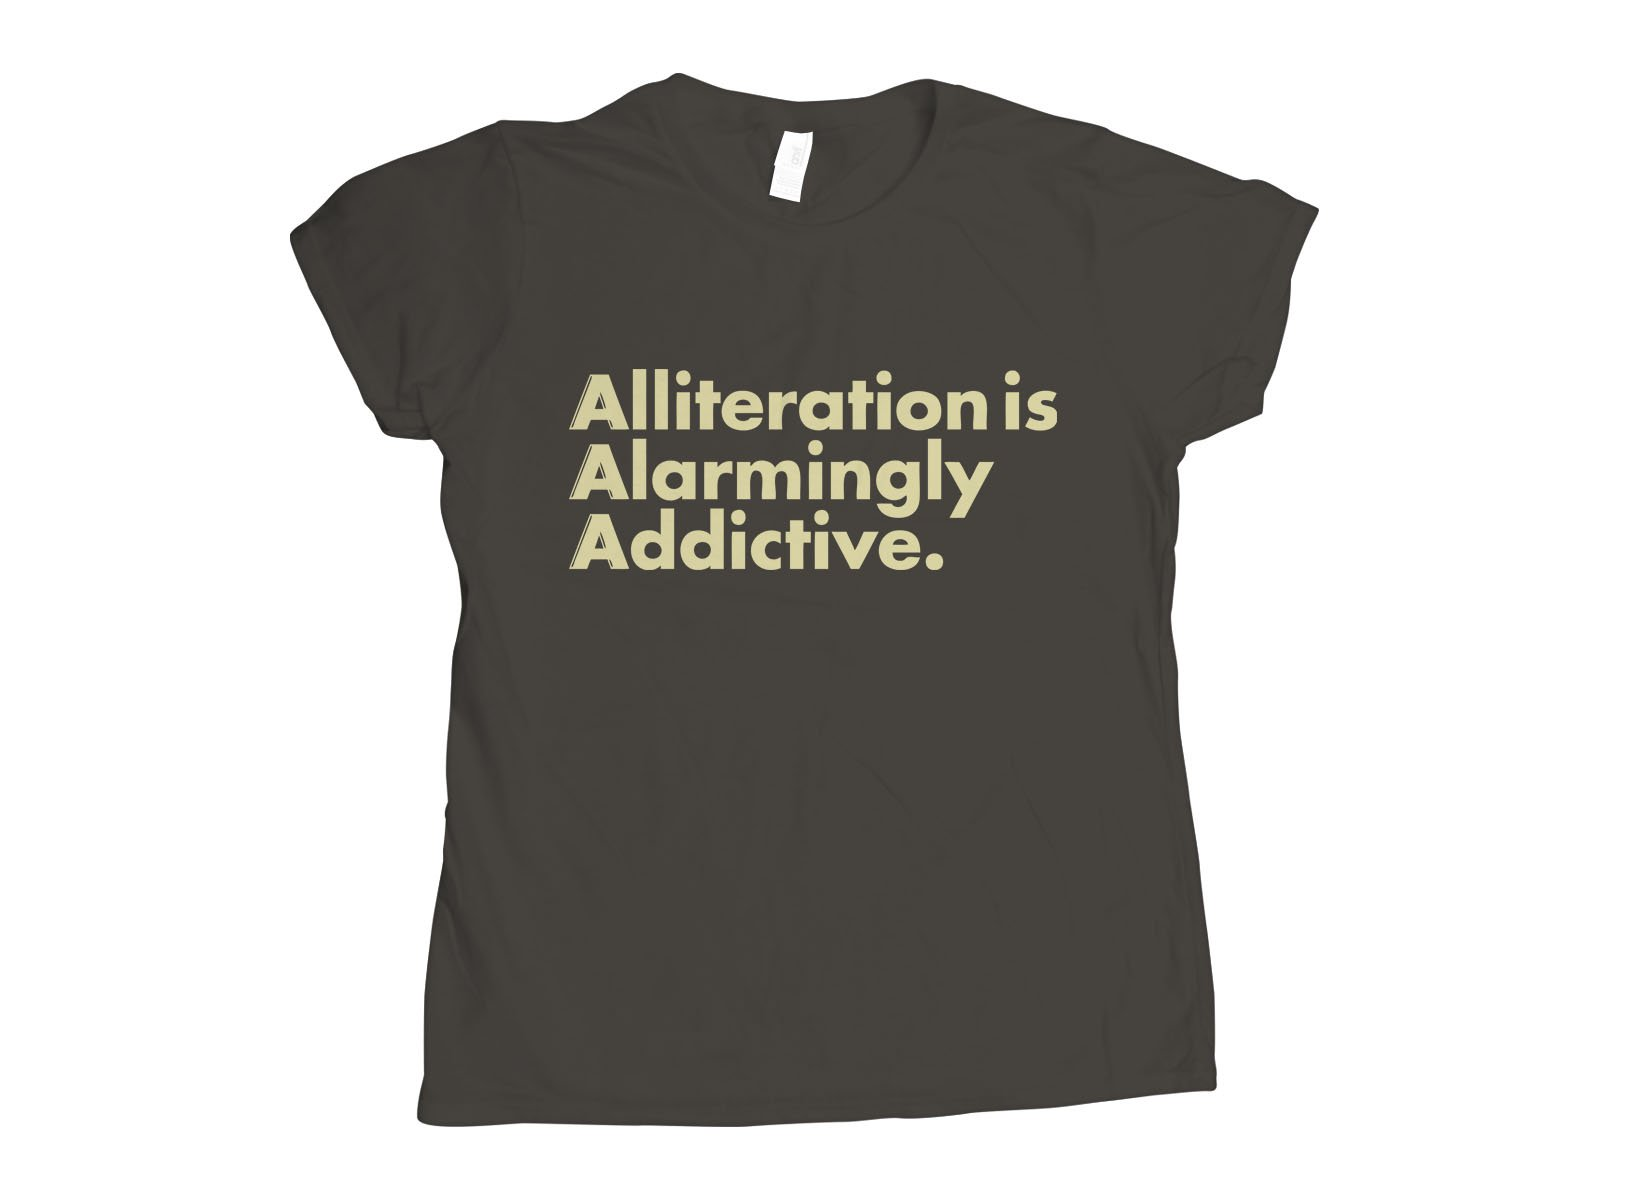 Alliteration Is Alarmingly Addictive on Womens T-Shirt